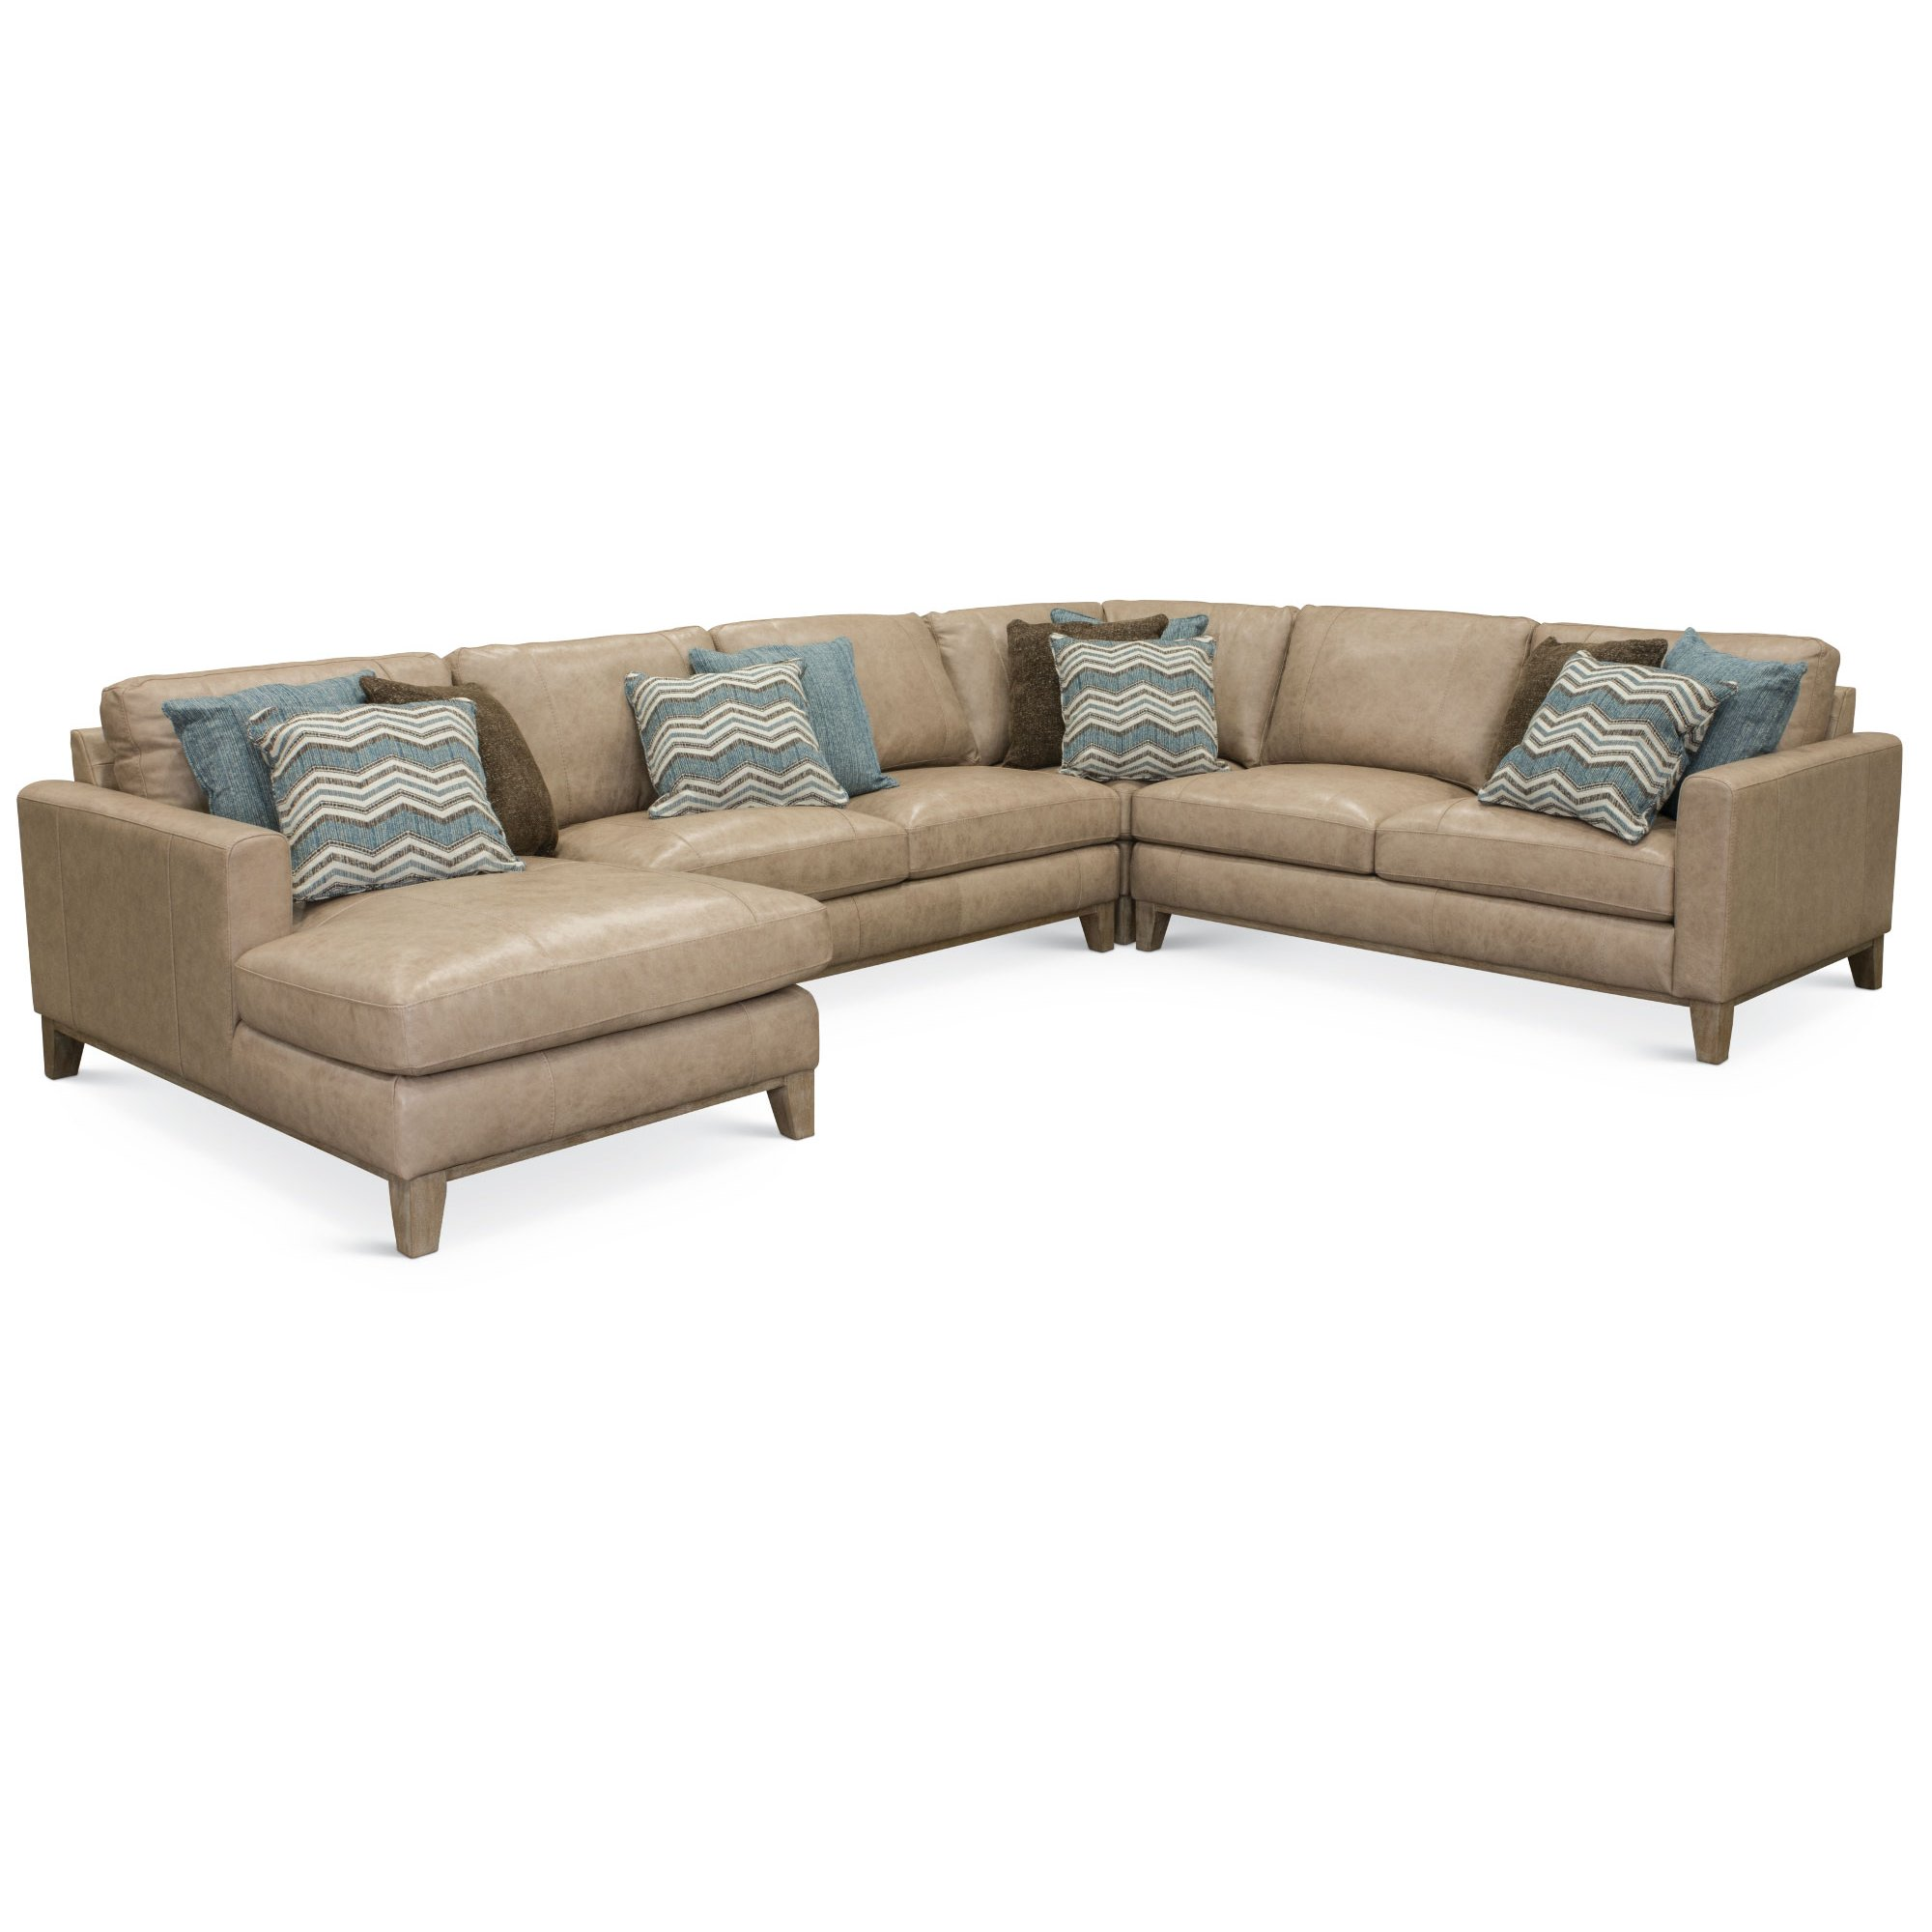 Sofology Quebec Contemporary Leather Sectional Sofa Sofa Ideas